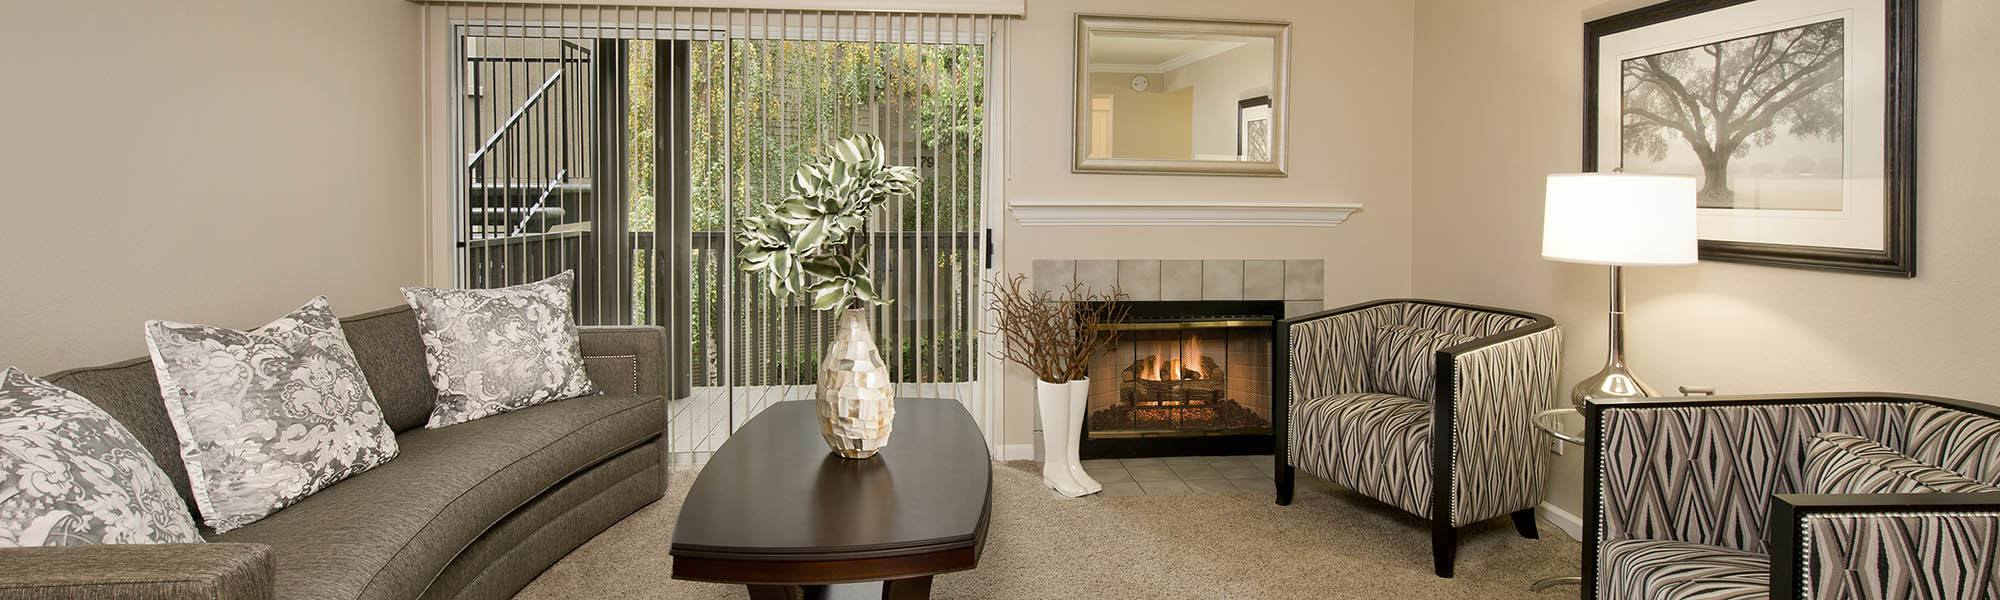 Read reviews of Mill Springs Park Apartment Homes on our website